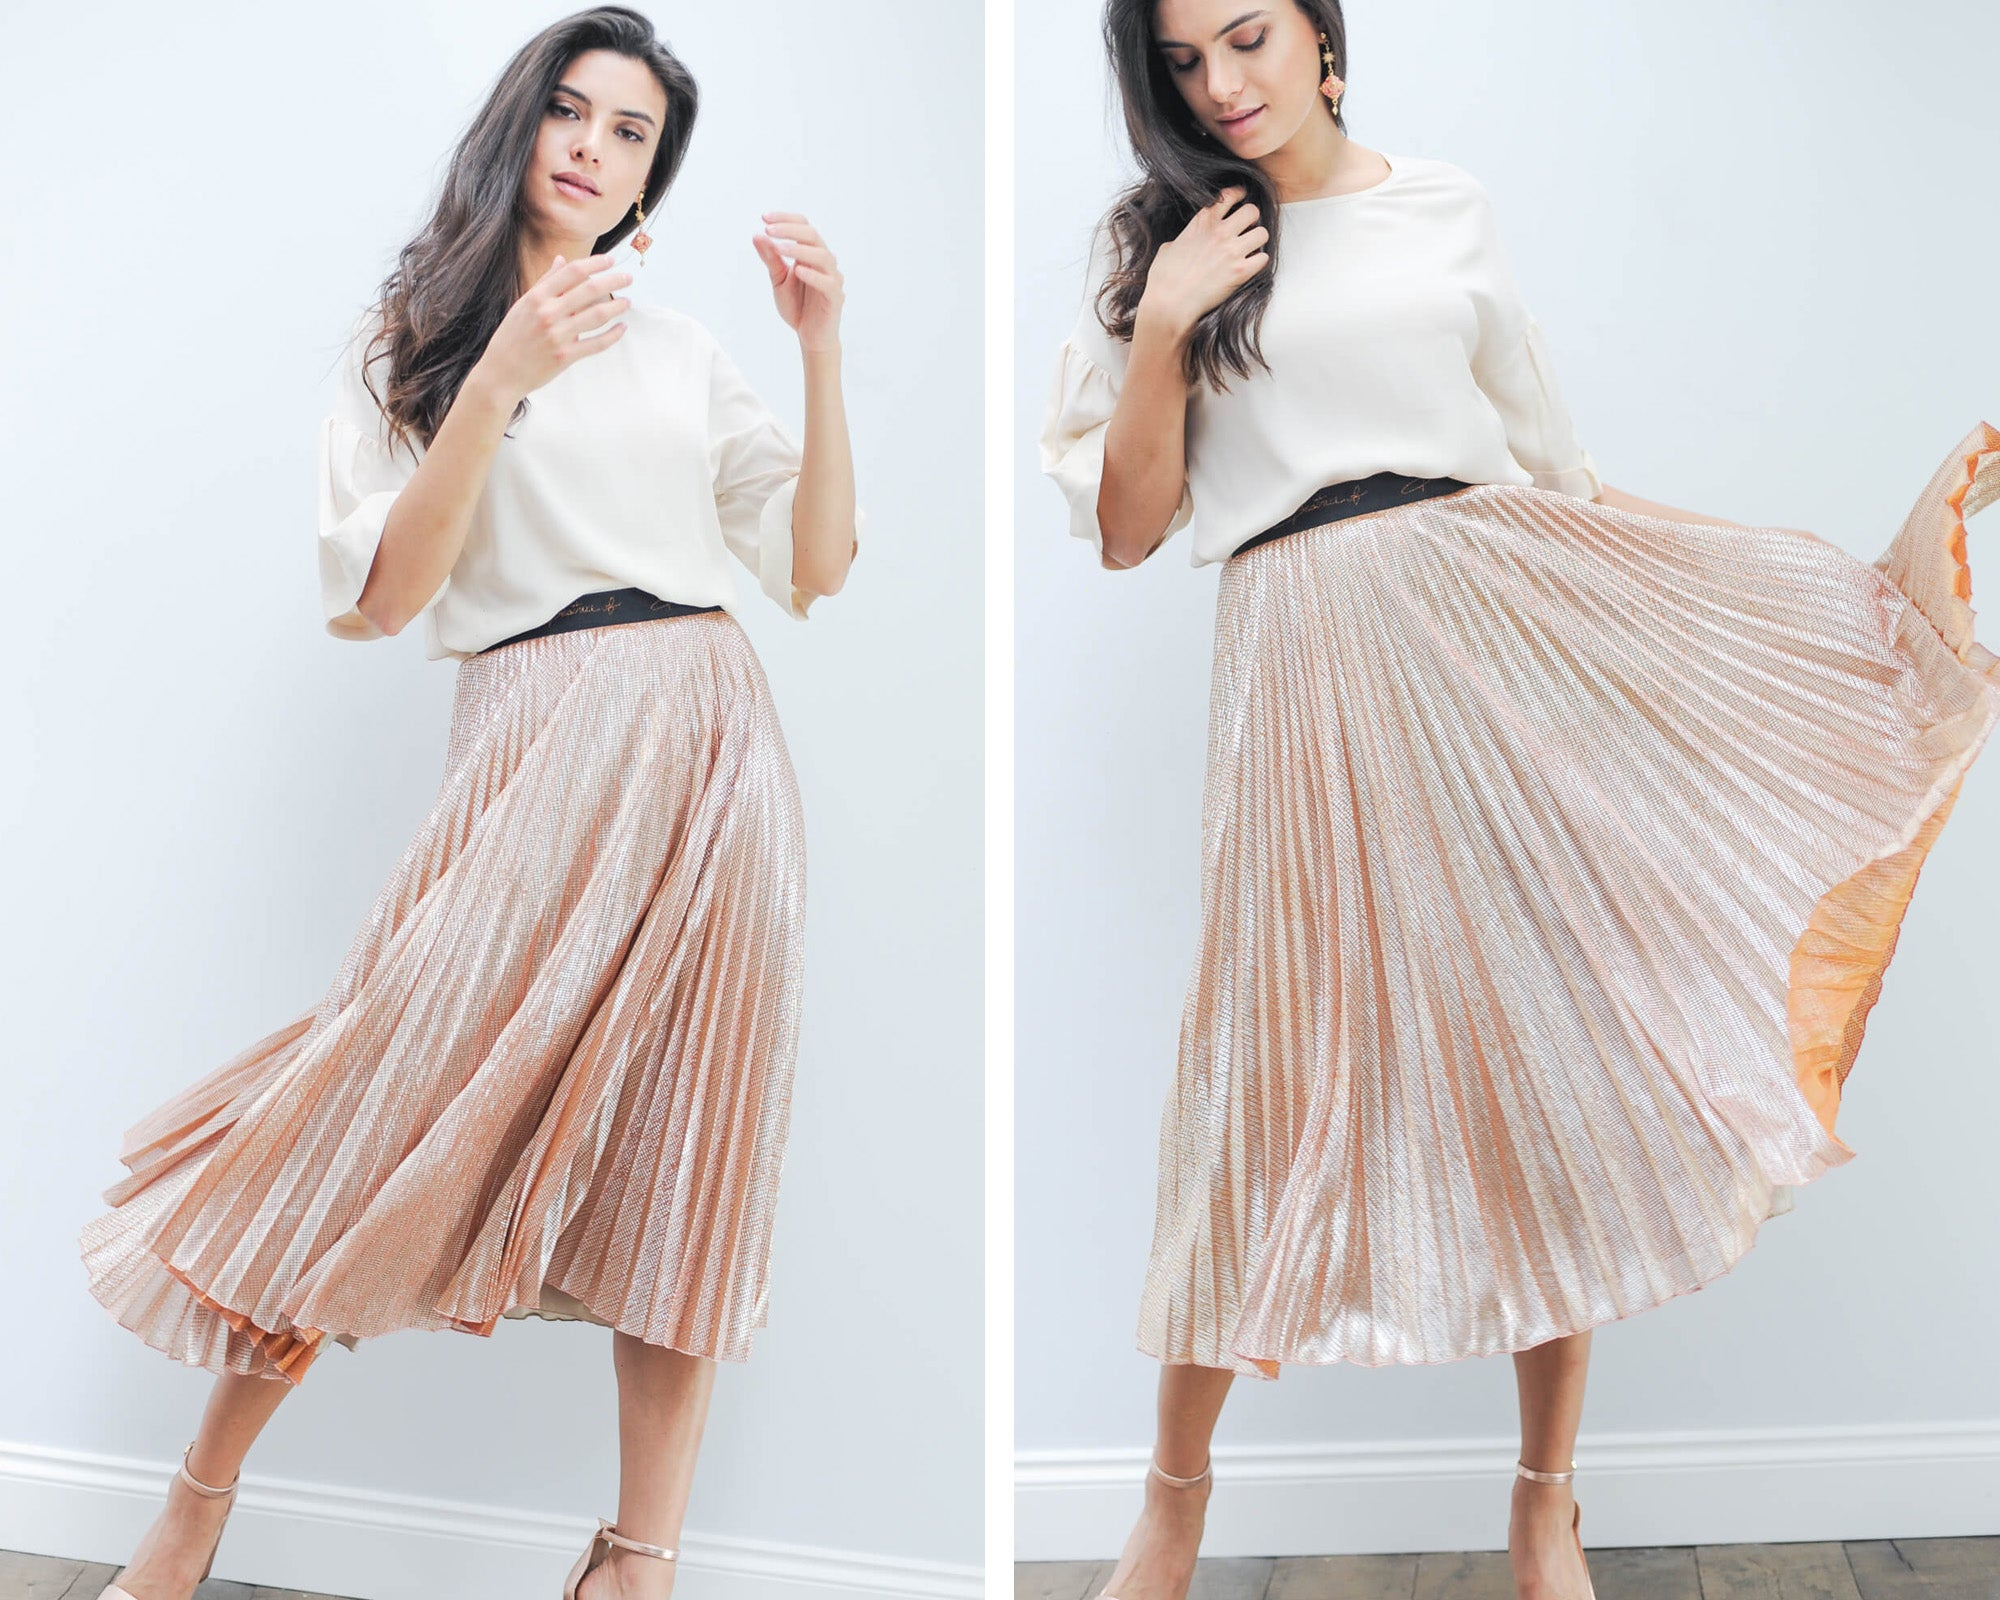 Beatrice B orange skirt and silk tee